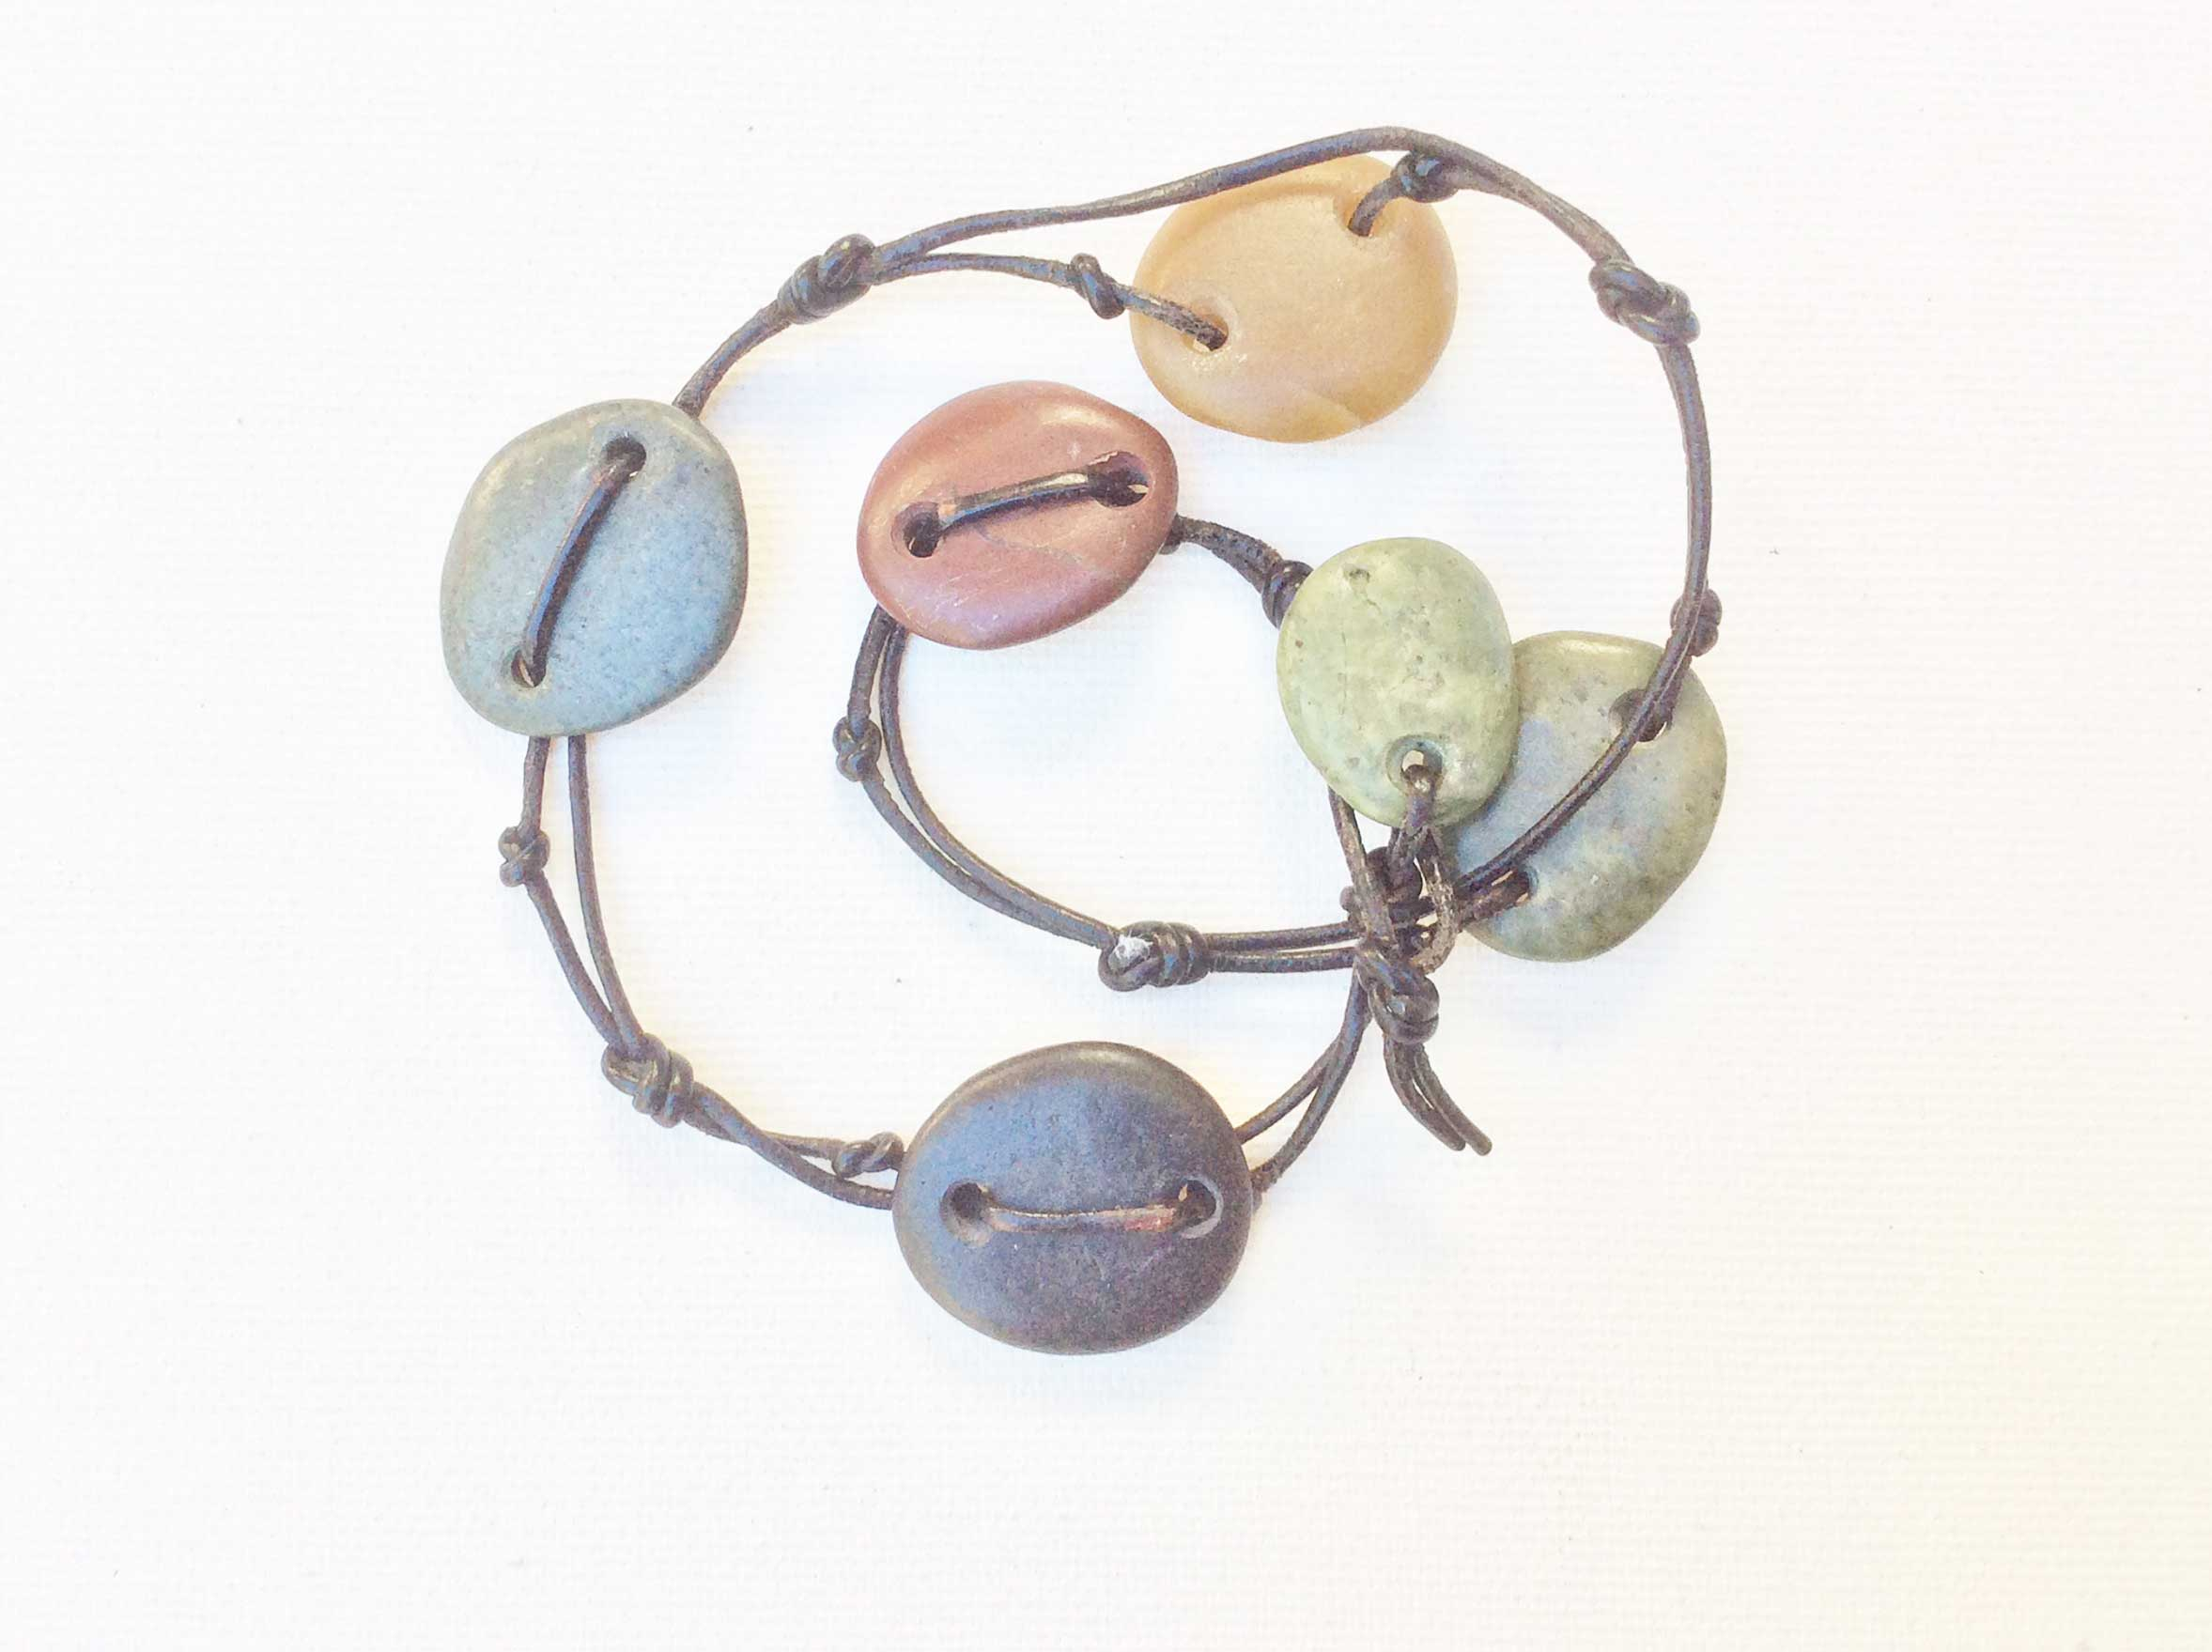 Fern Canyon 1 Bracelet, 6 stone, double wrap, leather, 14 inches By Moss Gathers Stones